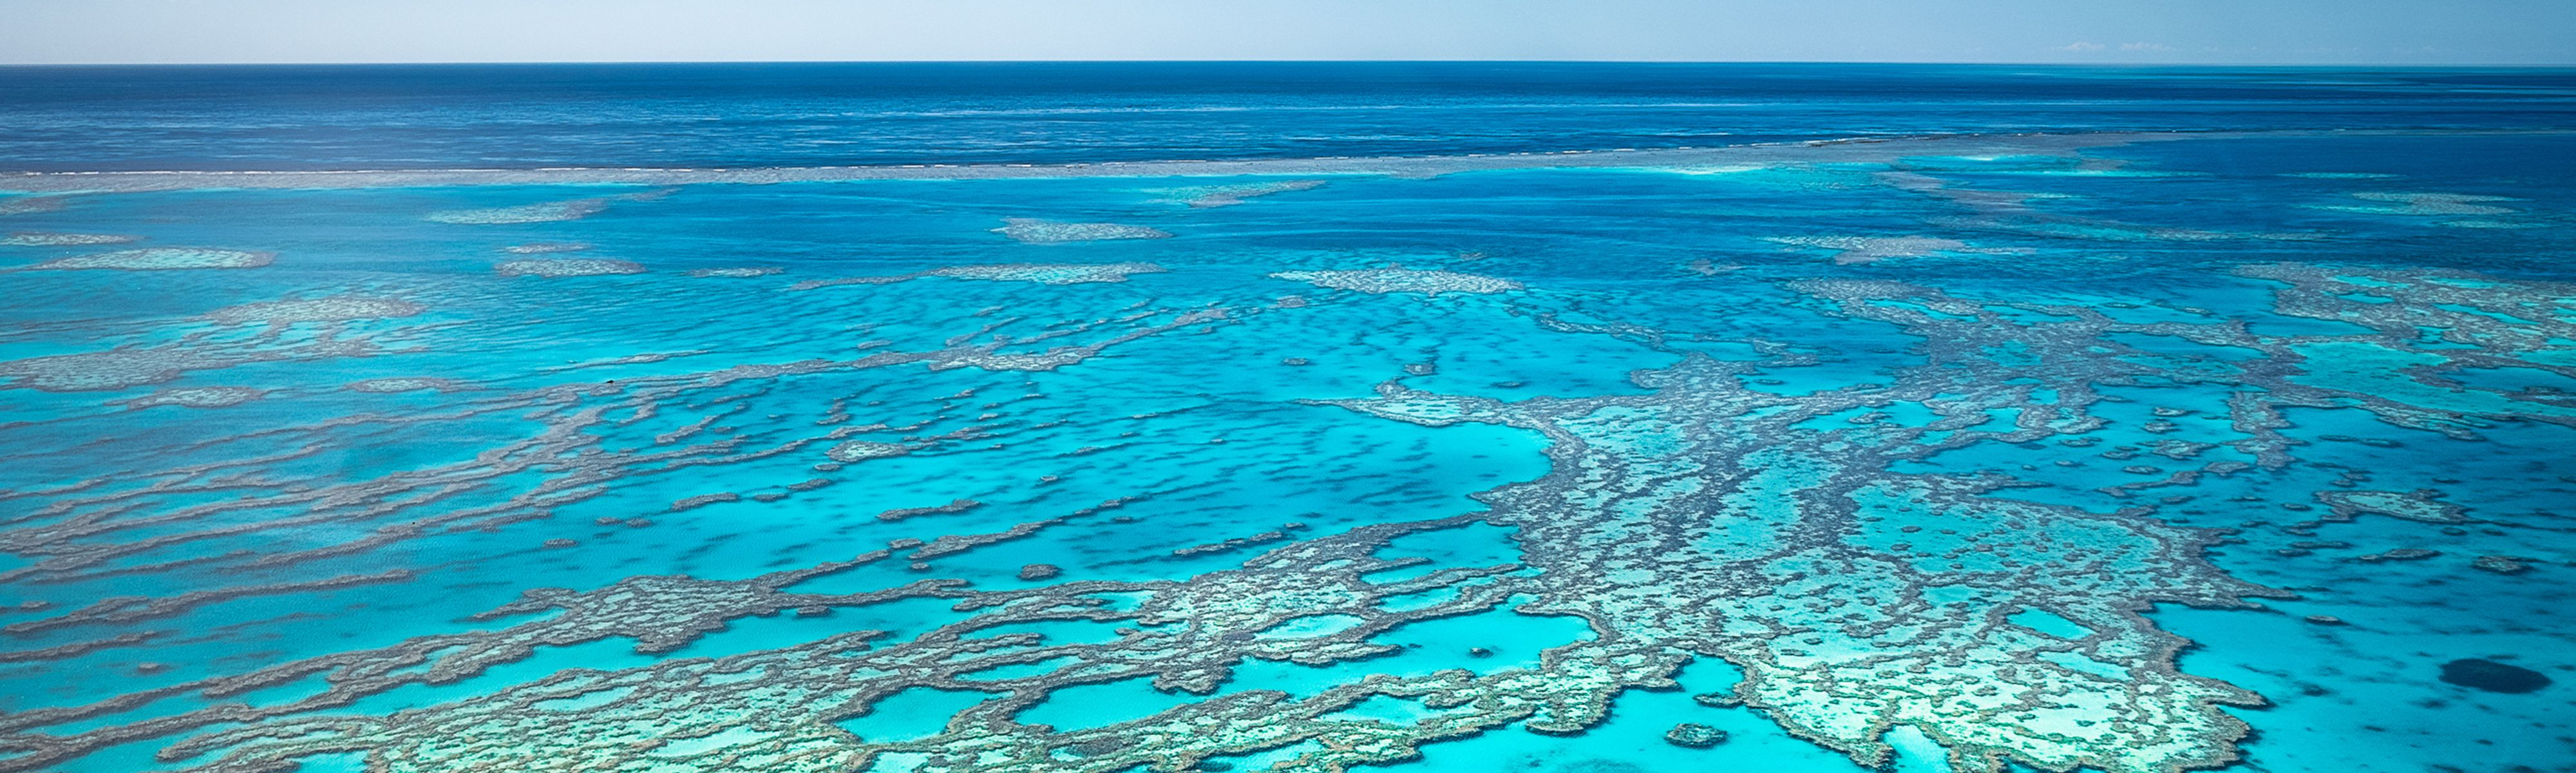 crystal blue water covering the great barrier reef in australia